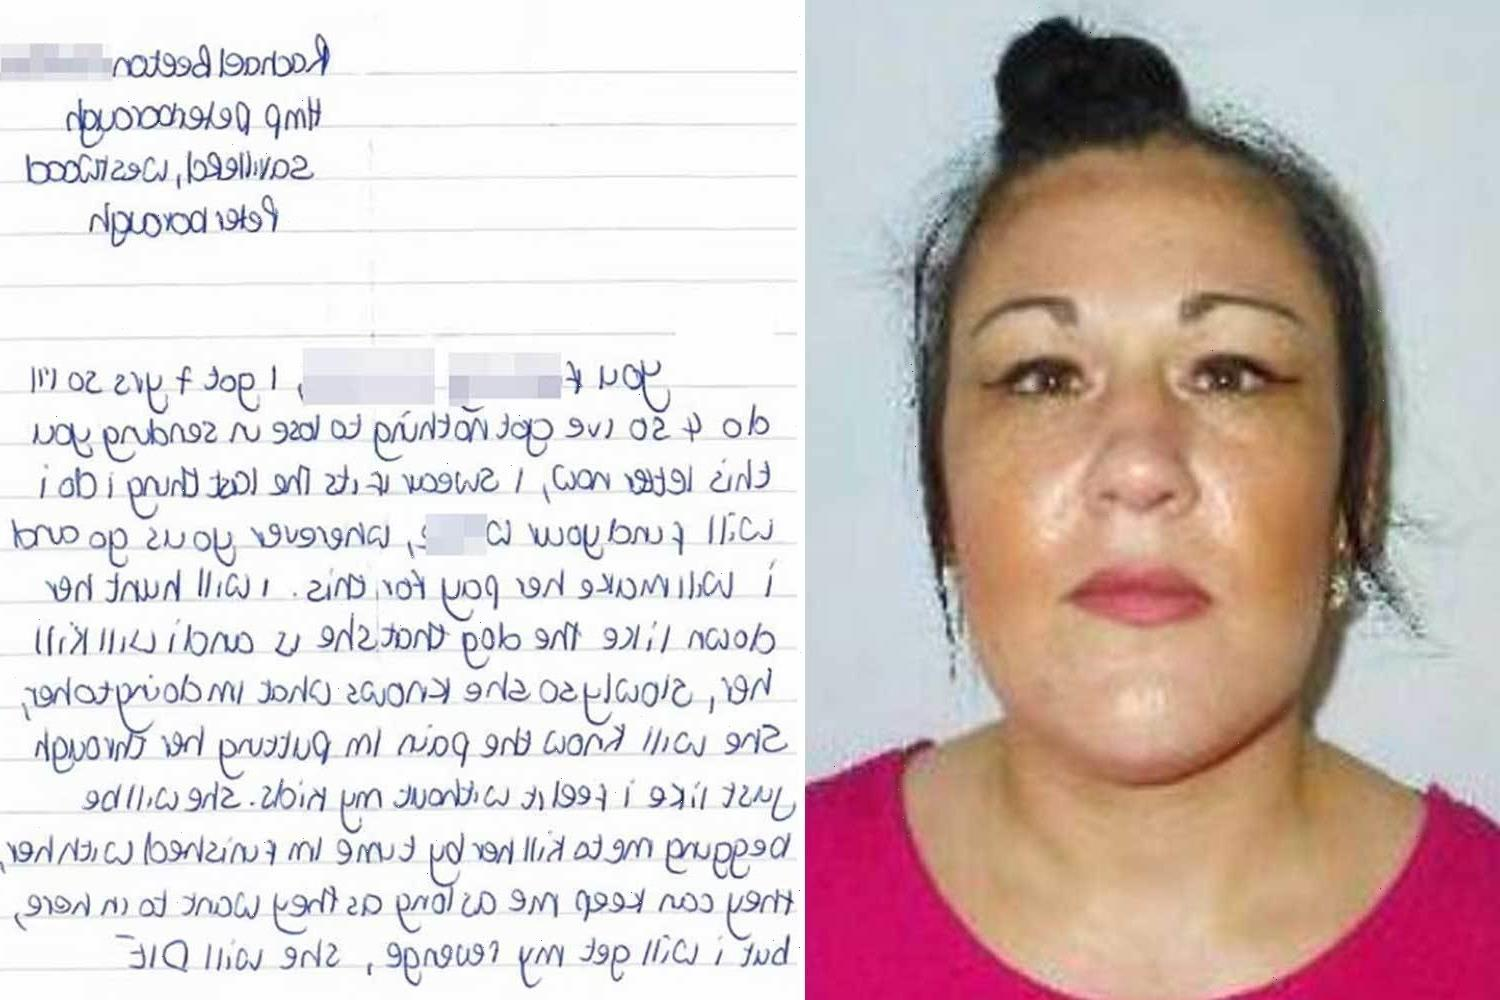 Mum who planned to murder her ex and 'hunt down' his new lover 'like the dog she is' goes on the run from police